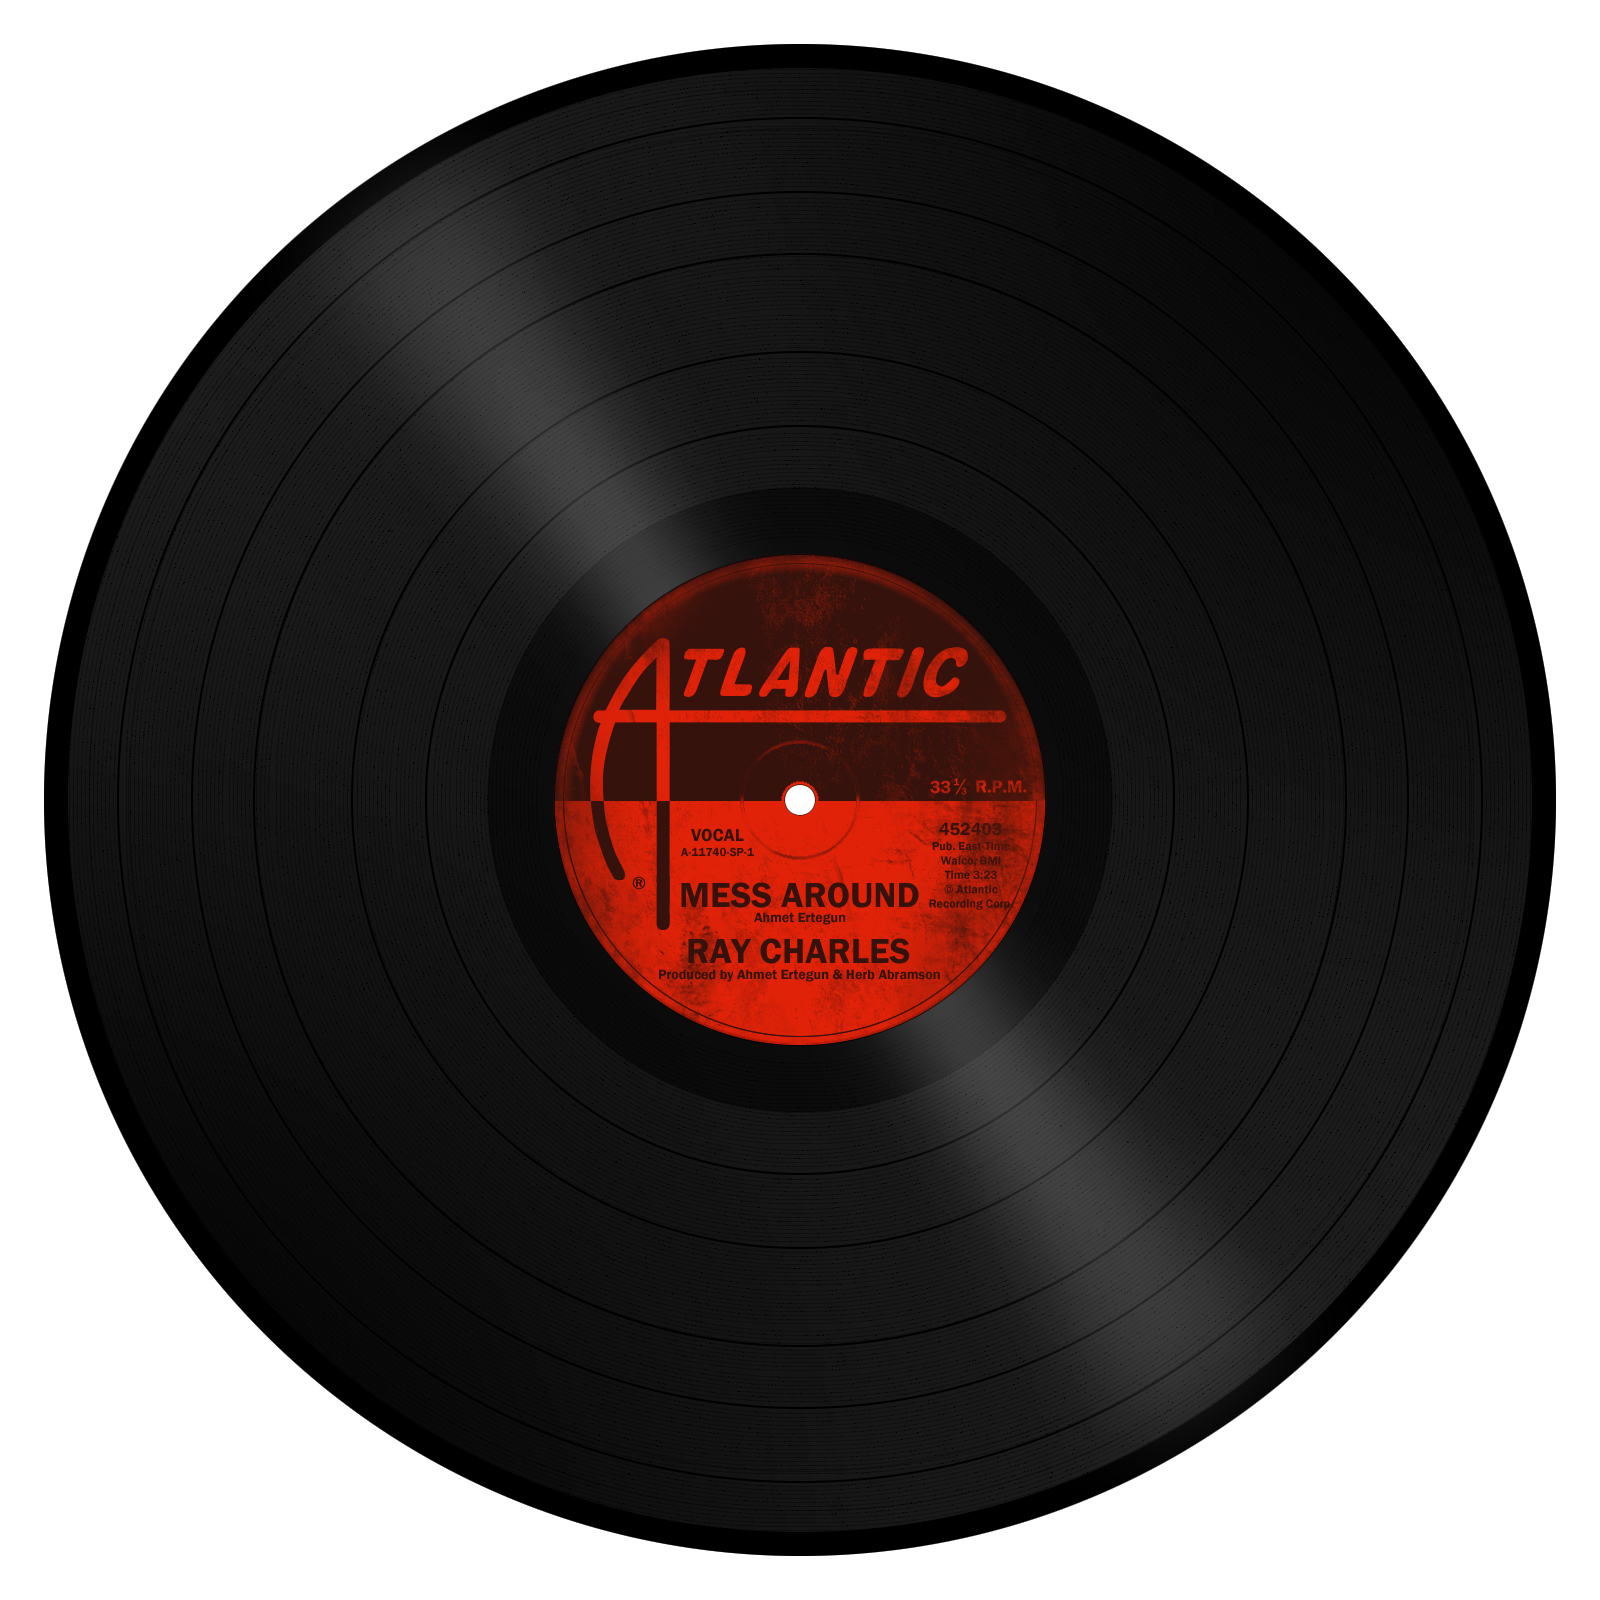 Vinyl Record by Ruffnekk73 on DeviantArt